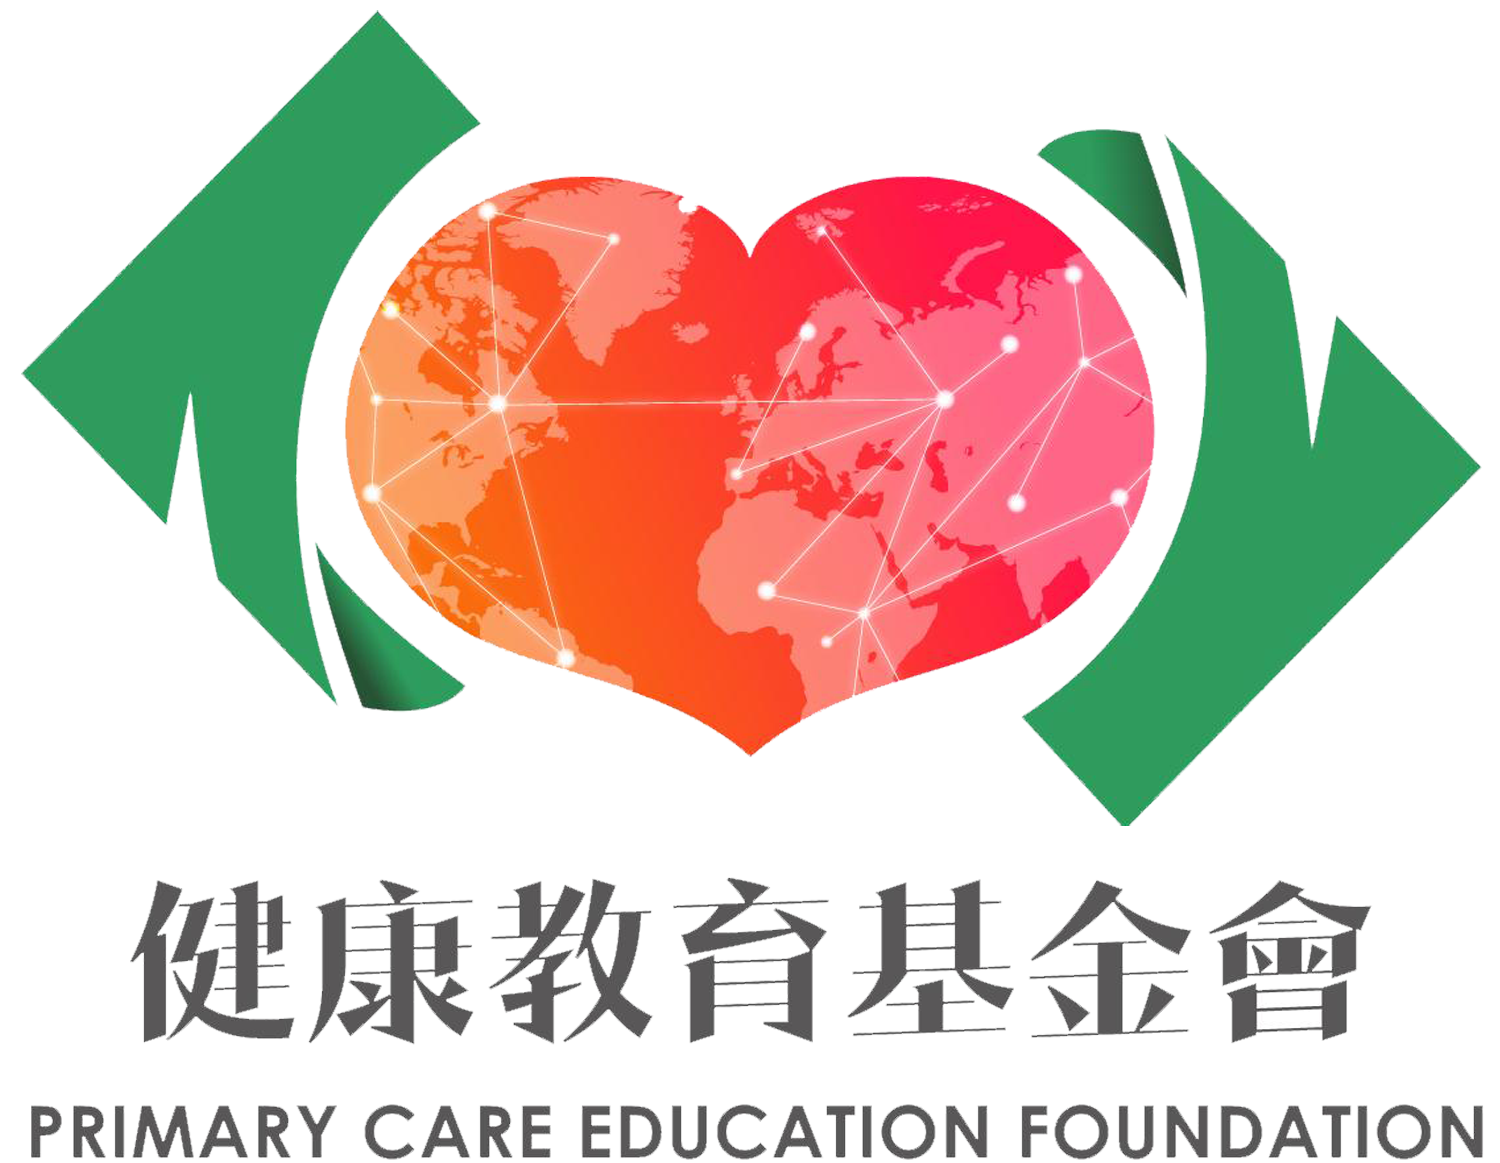 健康教育基金會 Primary Care Education Foundation